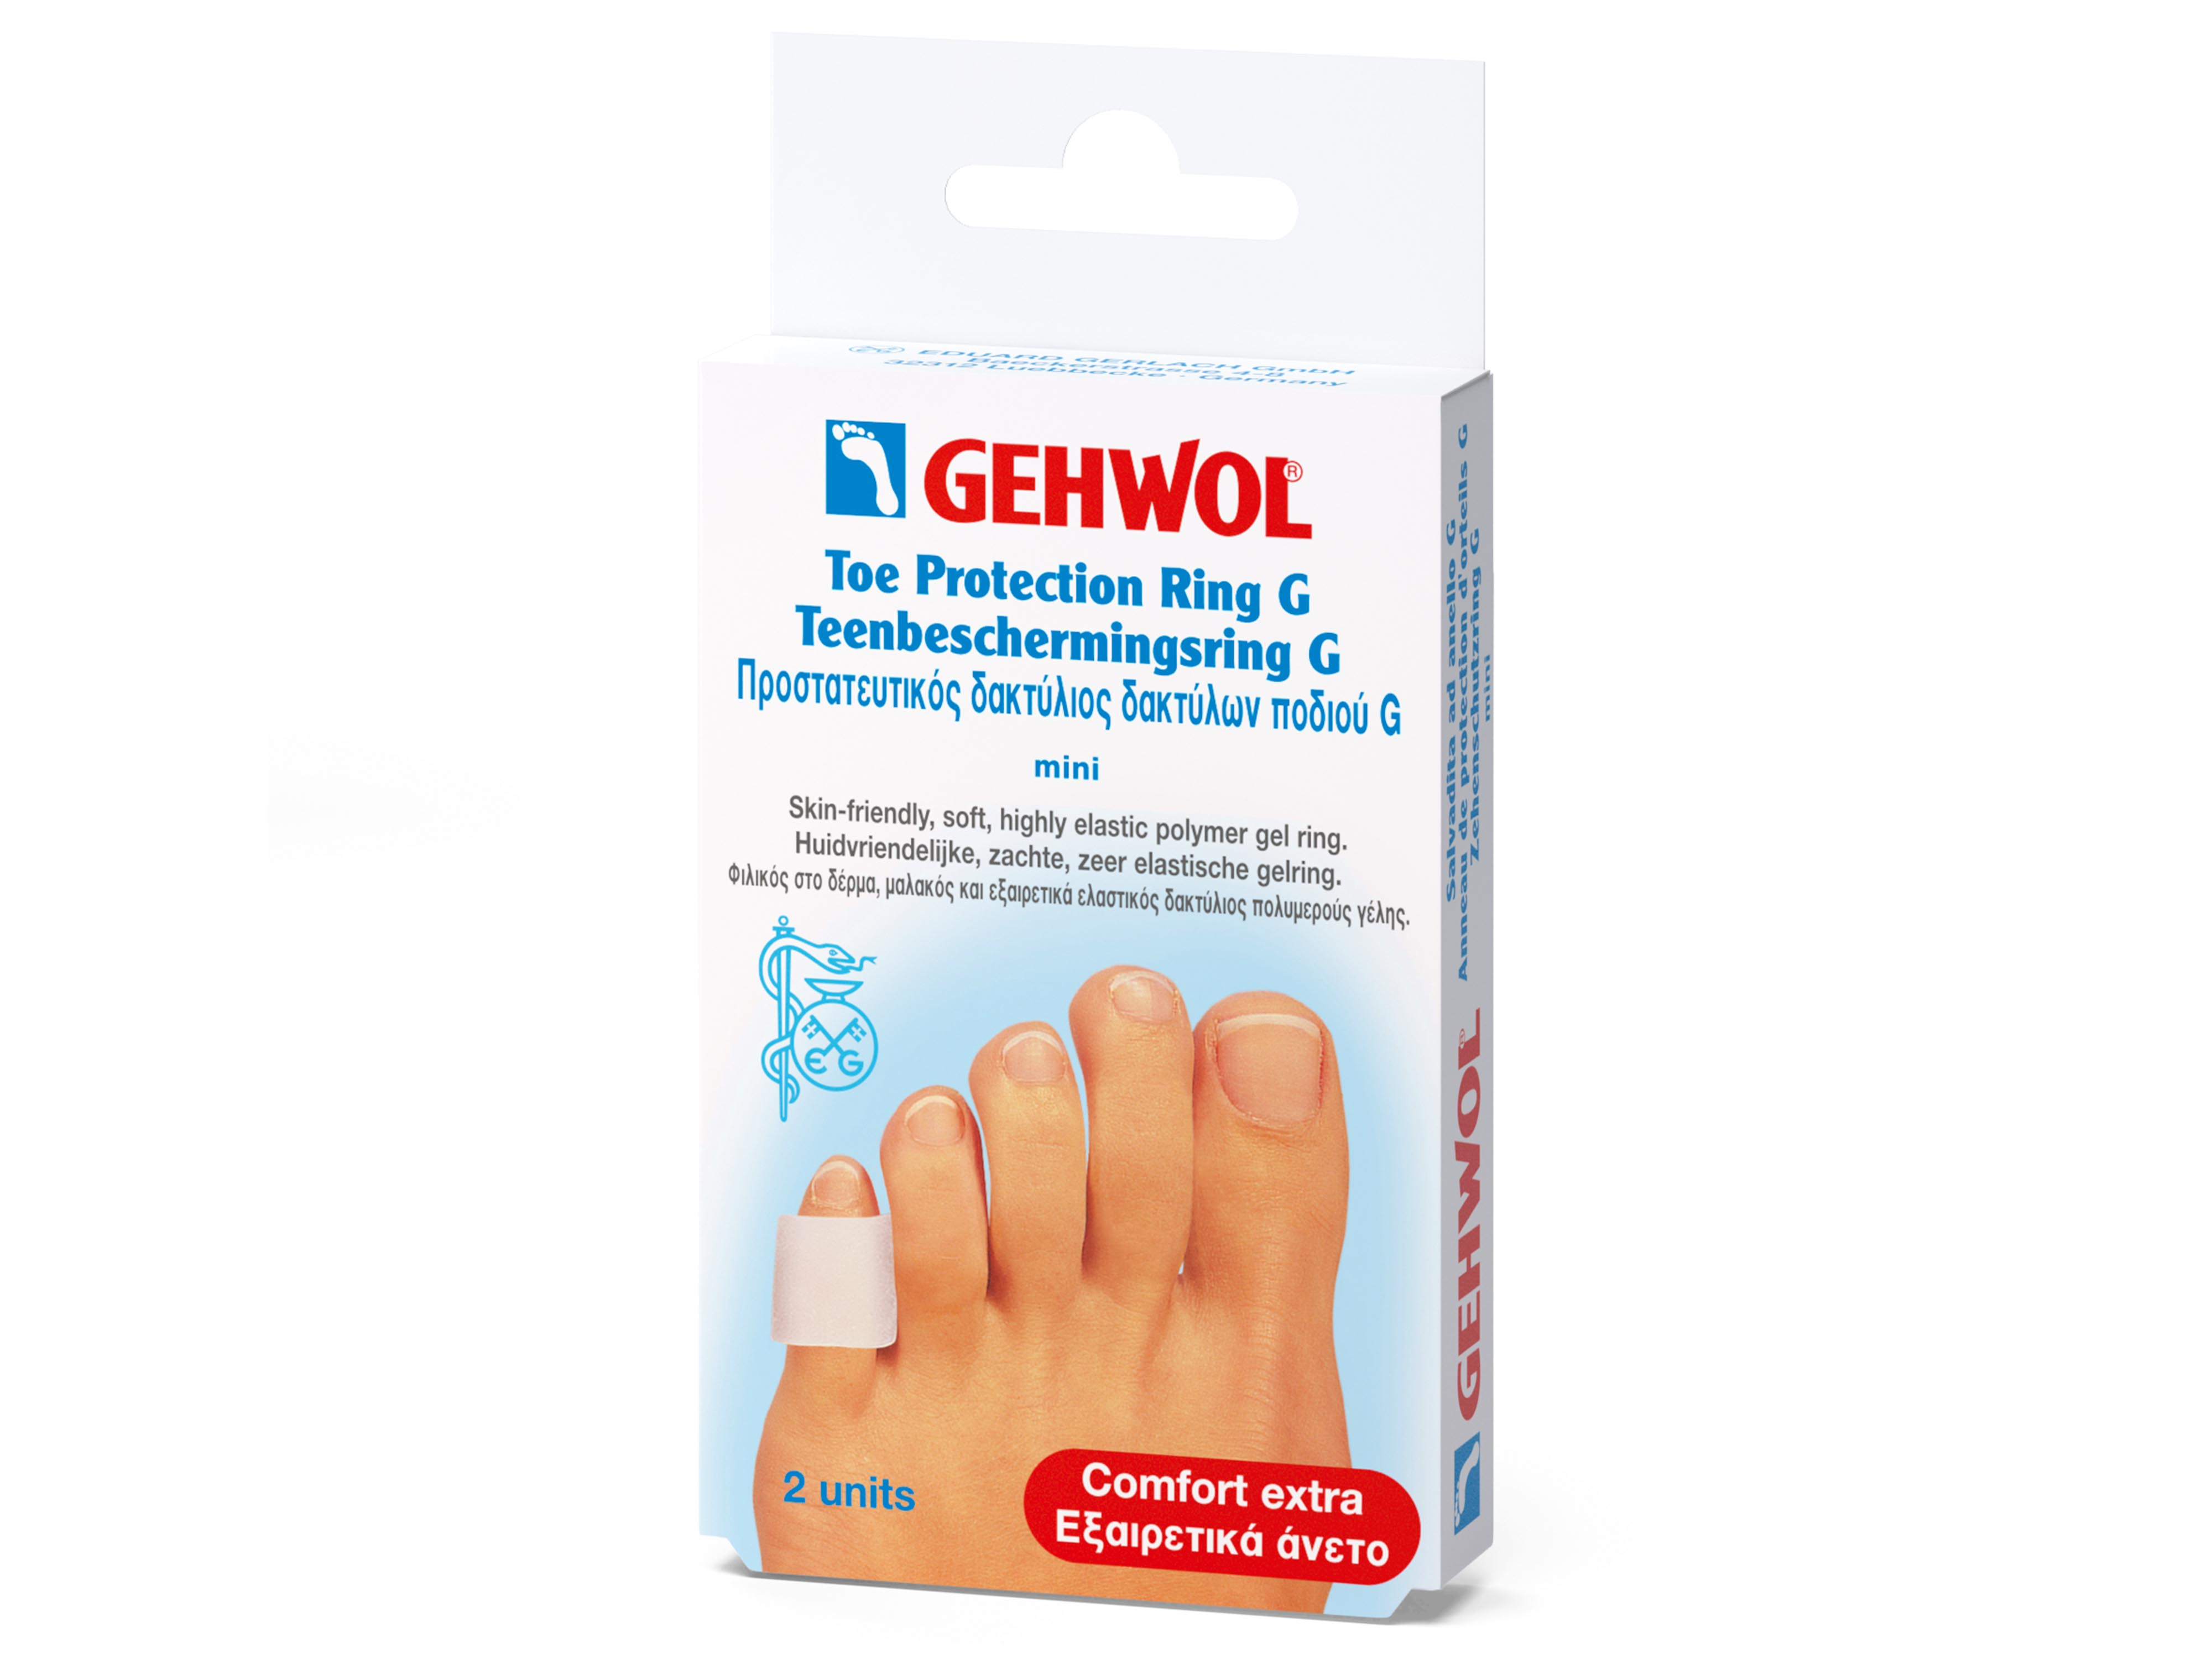 Gehwol Toe Protection Ring G, Mini, 2 stk.